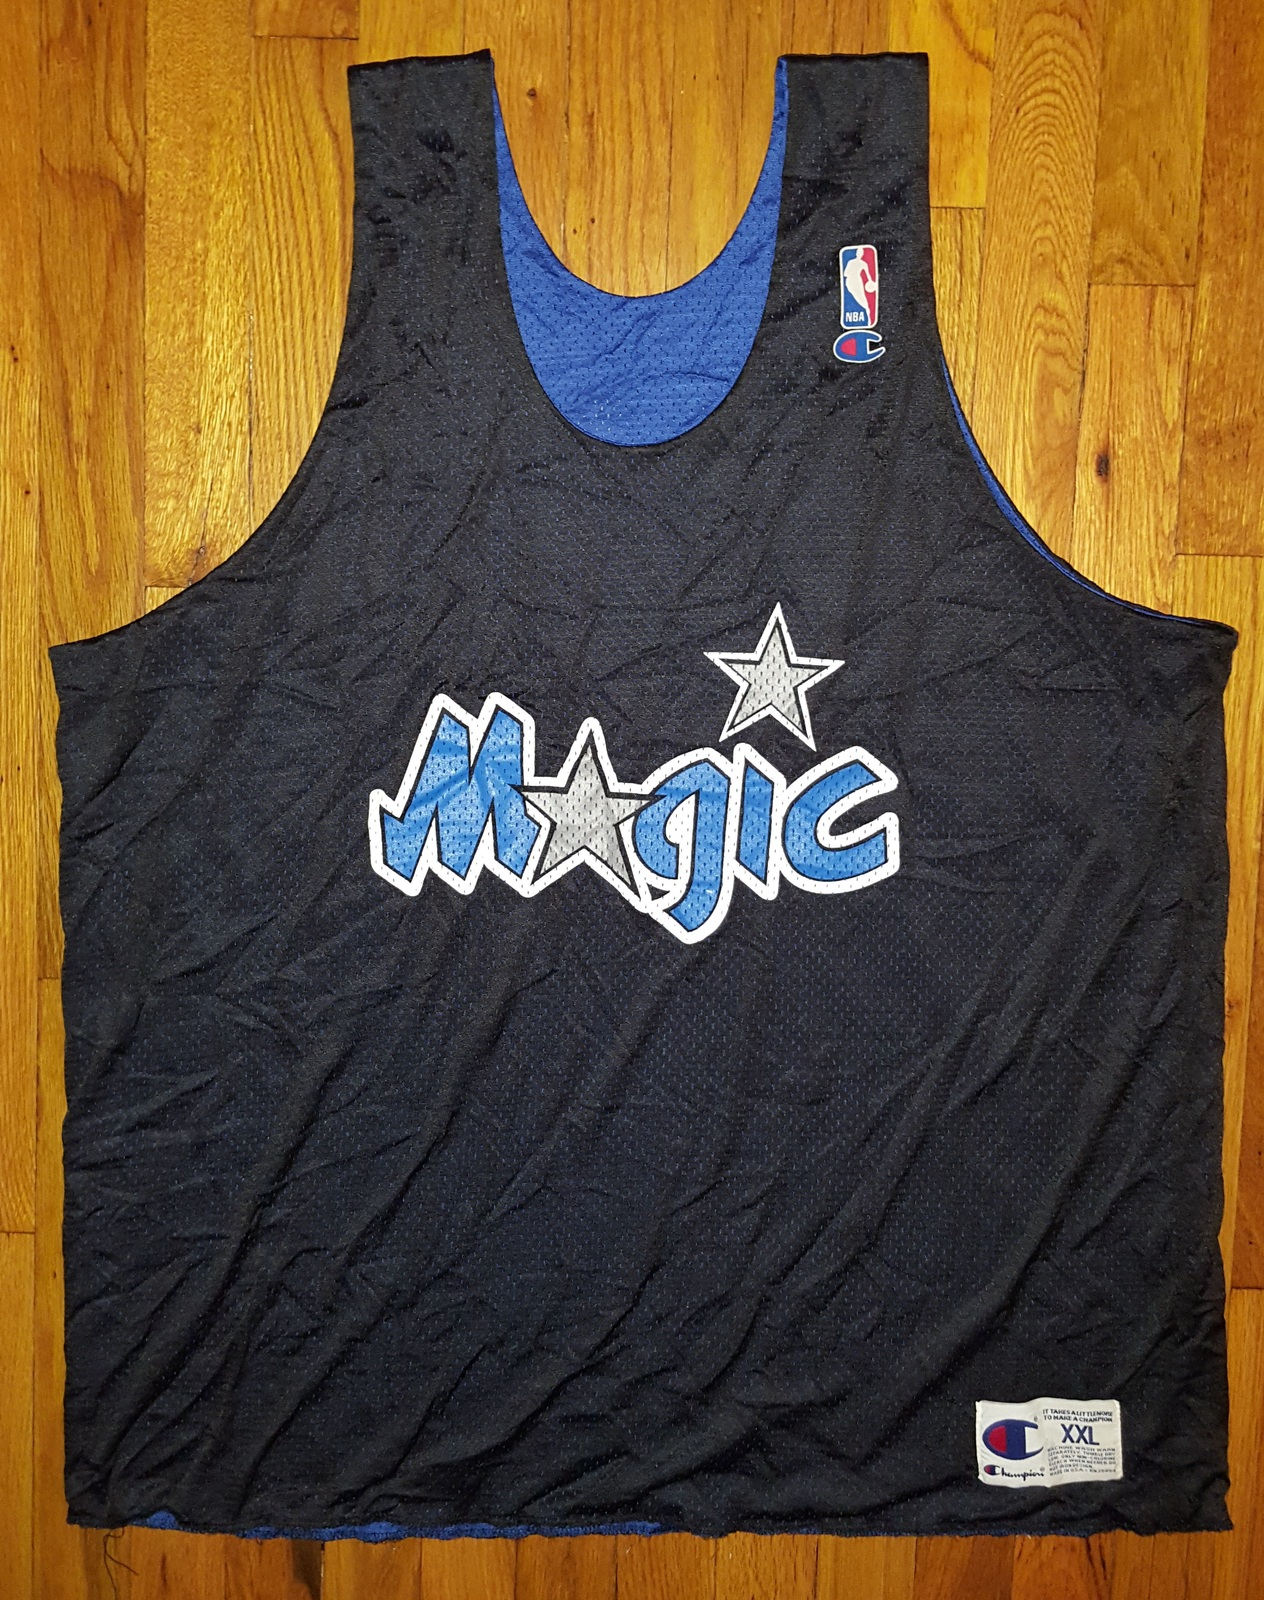 Authentic Champion Orlando Magics Practice Shooting Reversible Jersey XXL 2xl 2x